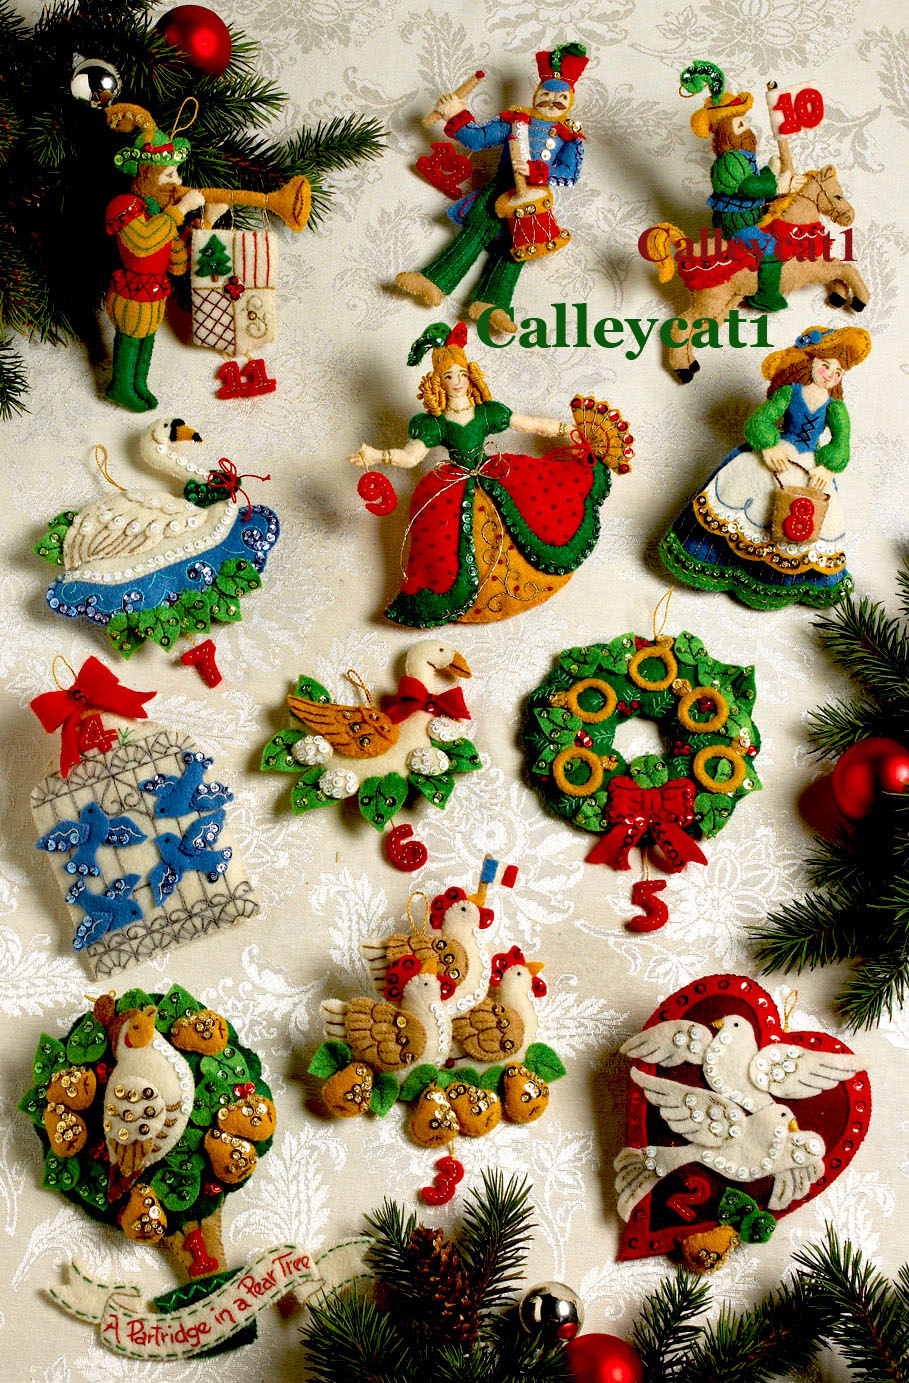 12 days of christmas bucilla felt ornament kit 86066 - Christmas Decoration Kits